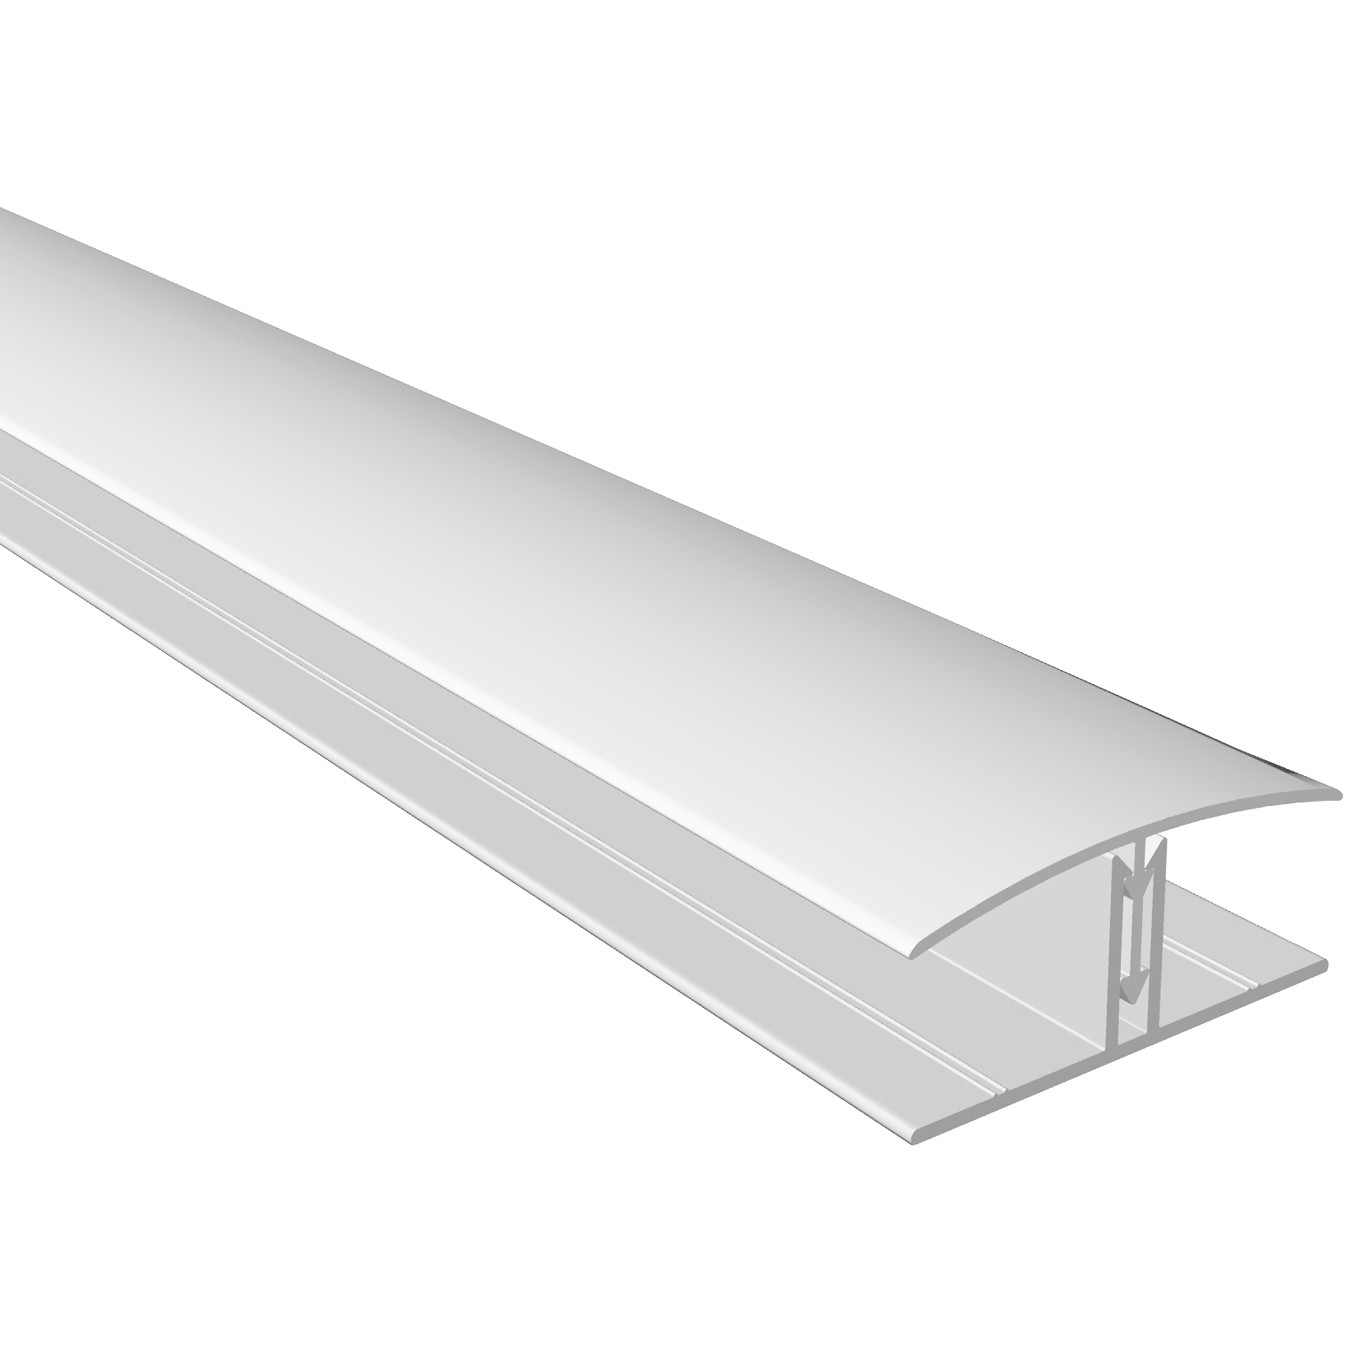 Freefoam Shiplap Cladding 2 Part H Joining Trim - White, 151mm, 3 metre